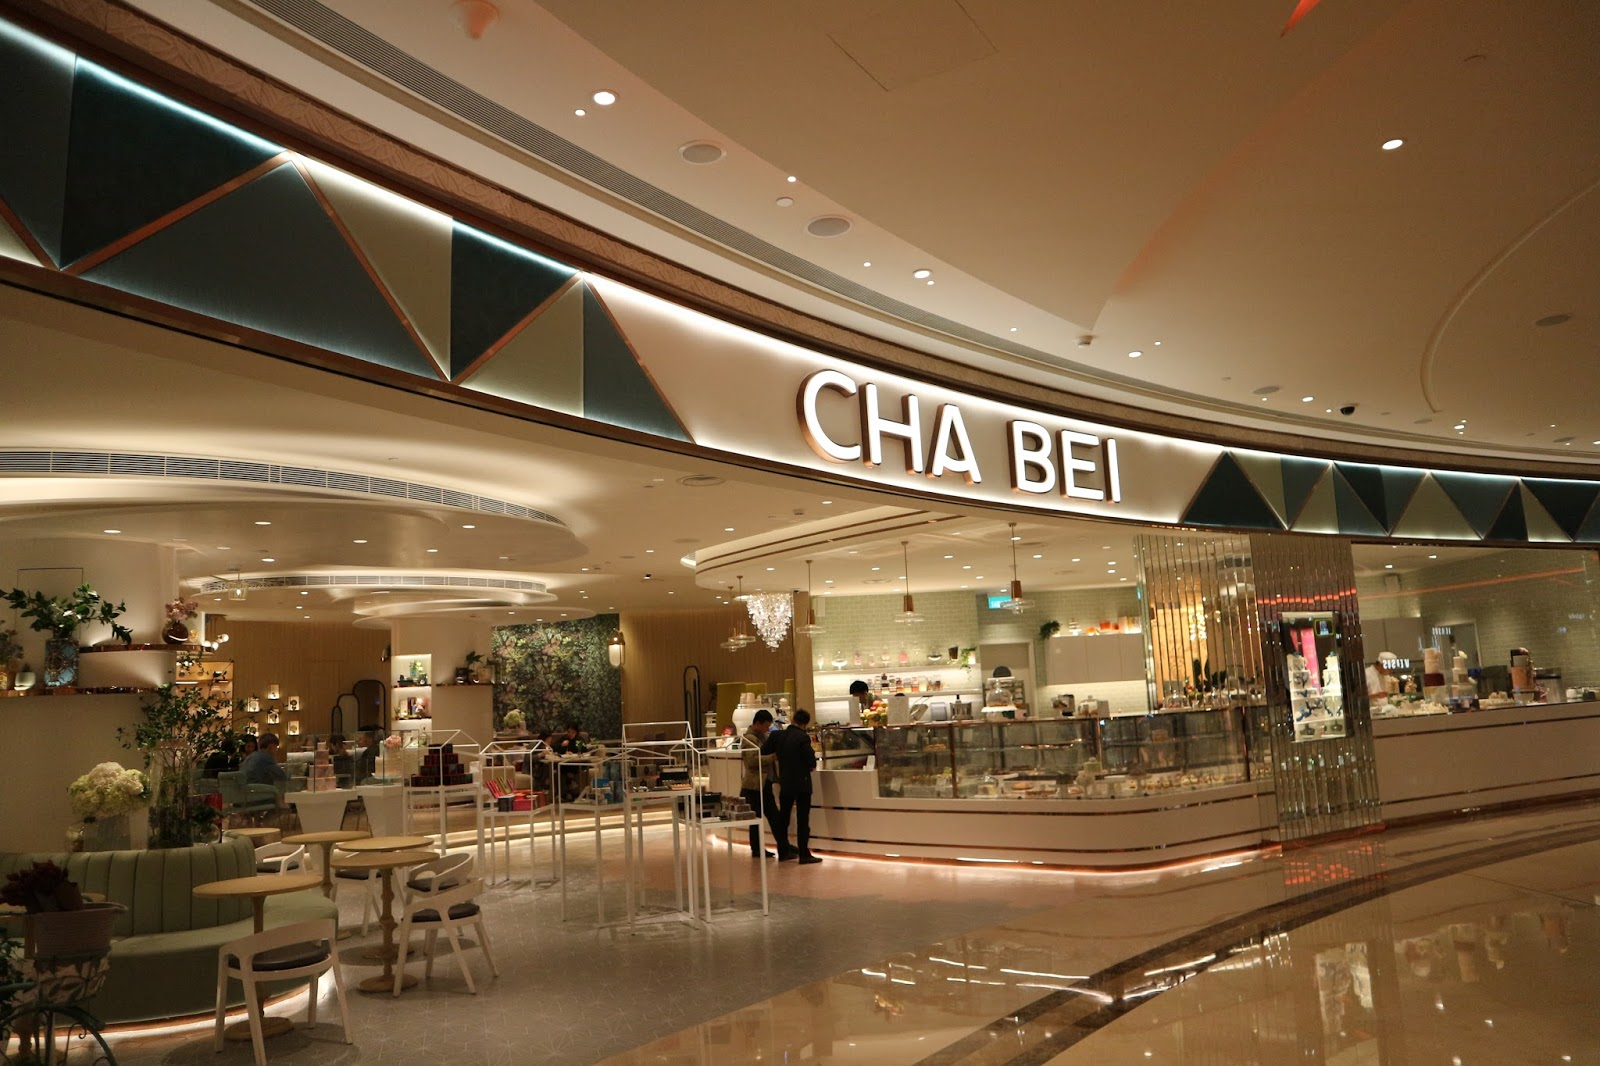 Cha Bei Newly Opened Luxury Lifestyle Cafe In Galaxy Macau